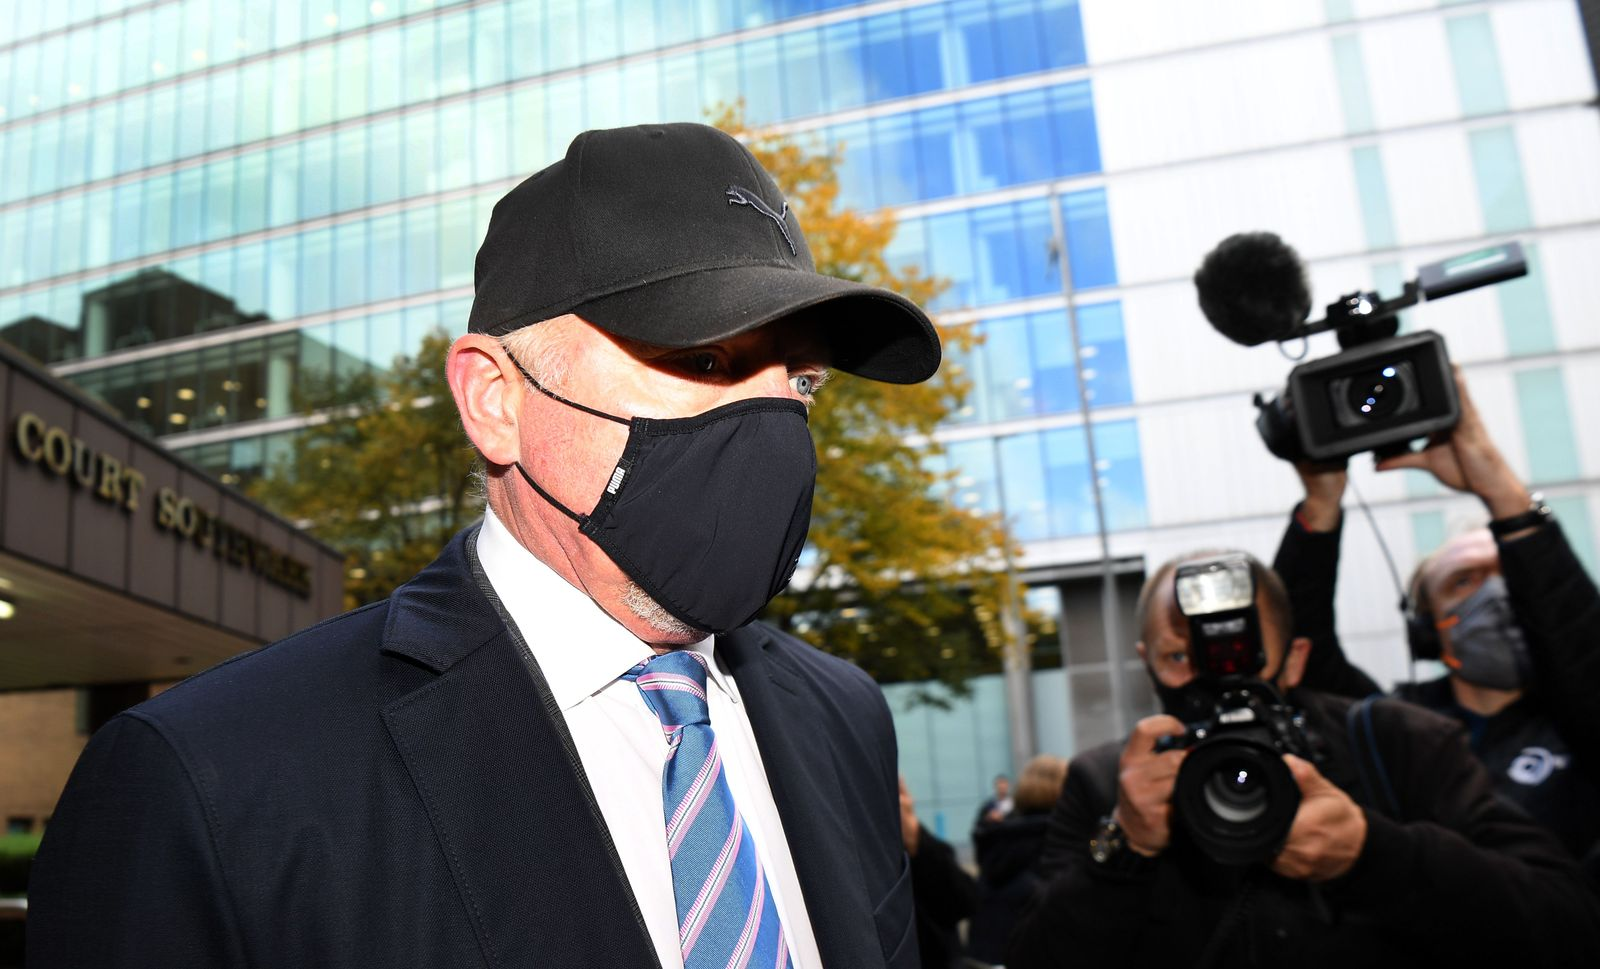 Boris Becker trial in London, United Kingdom - 22 Oct 2020